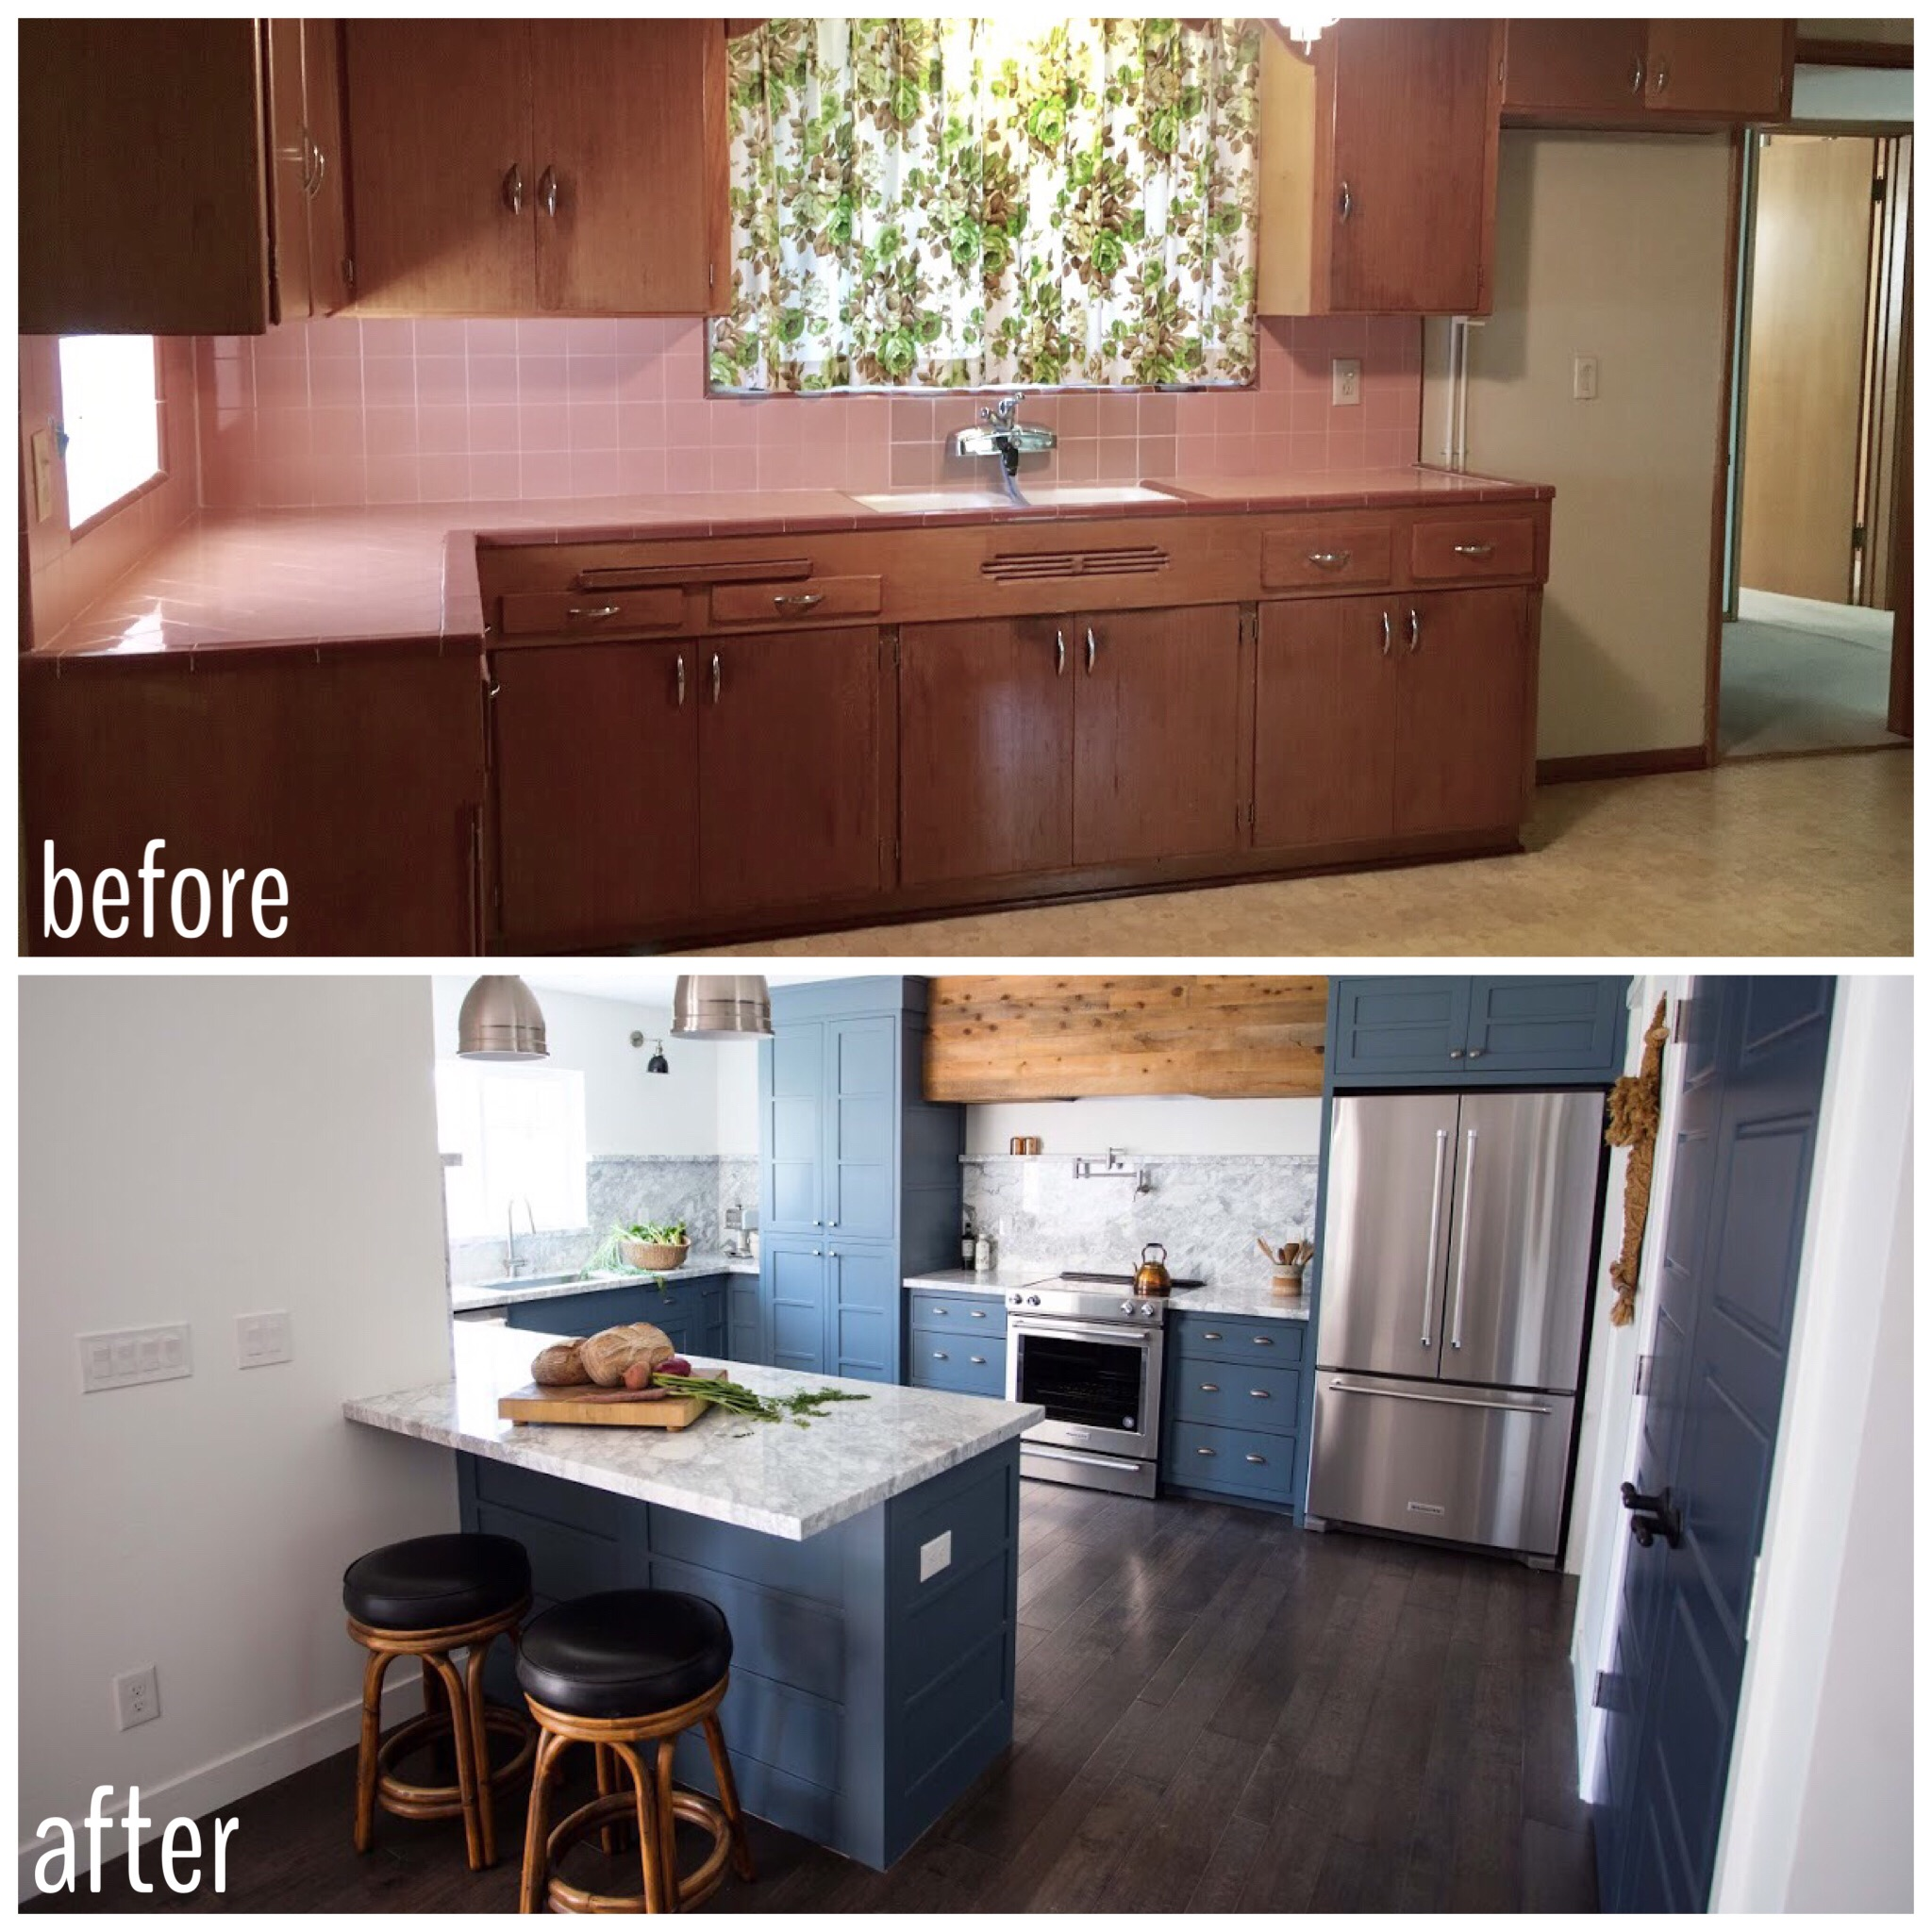 Clarendon Kitchen Before & After.JPG